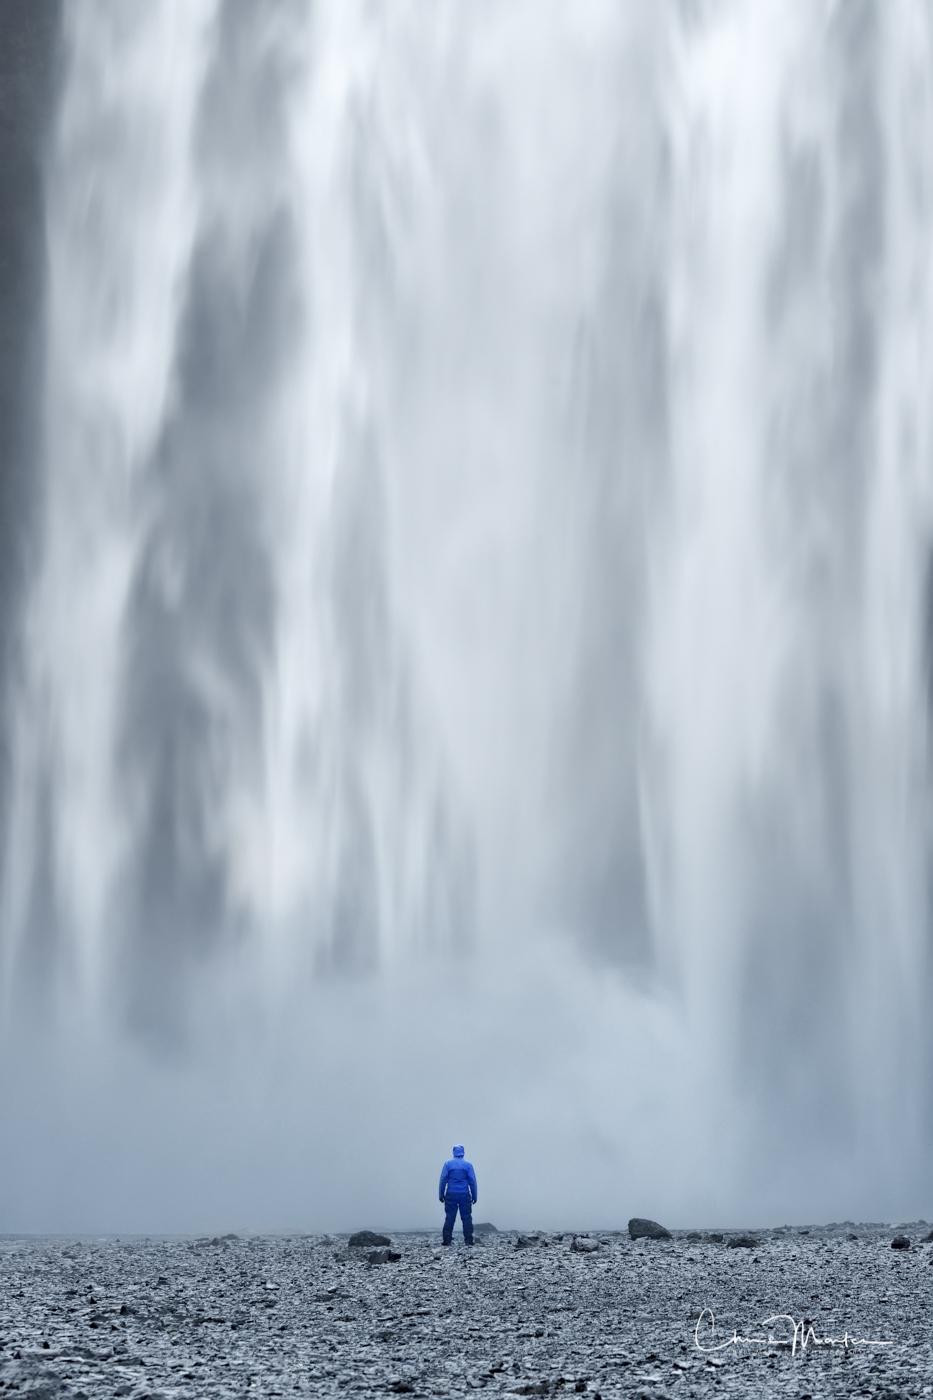 Iceland, waterfall, inferior, small, Skogafoss, person, vertical, photo